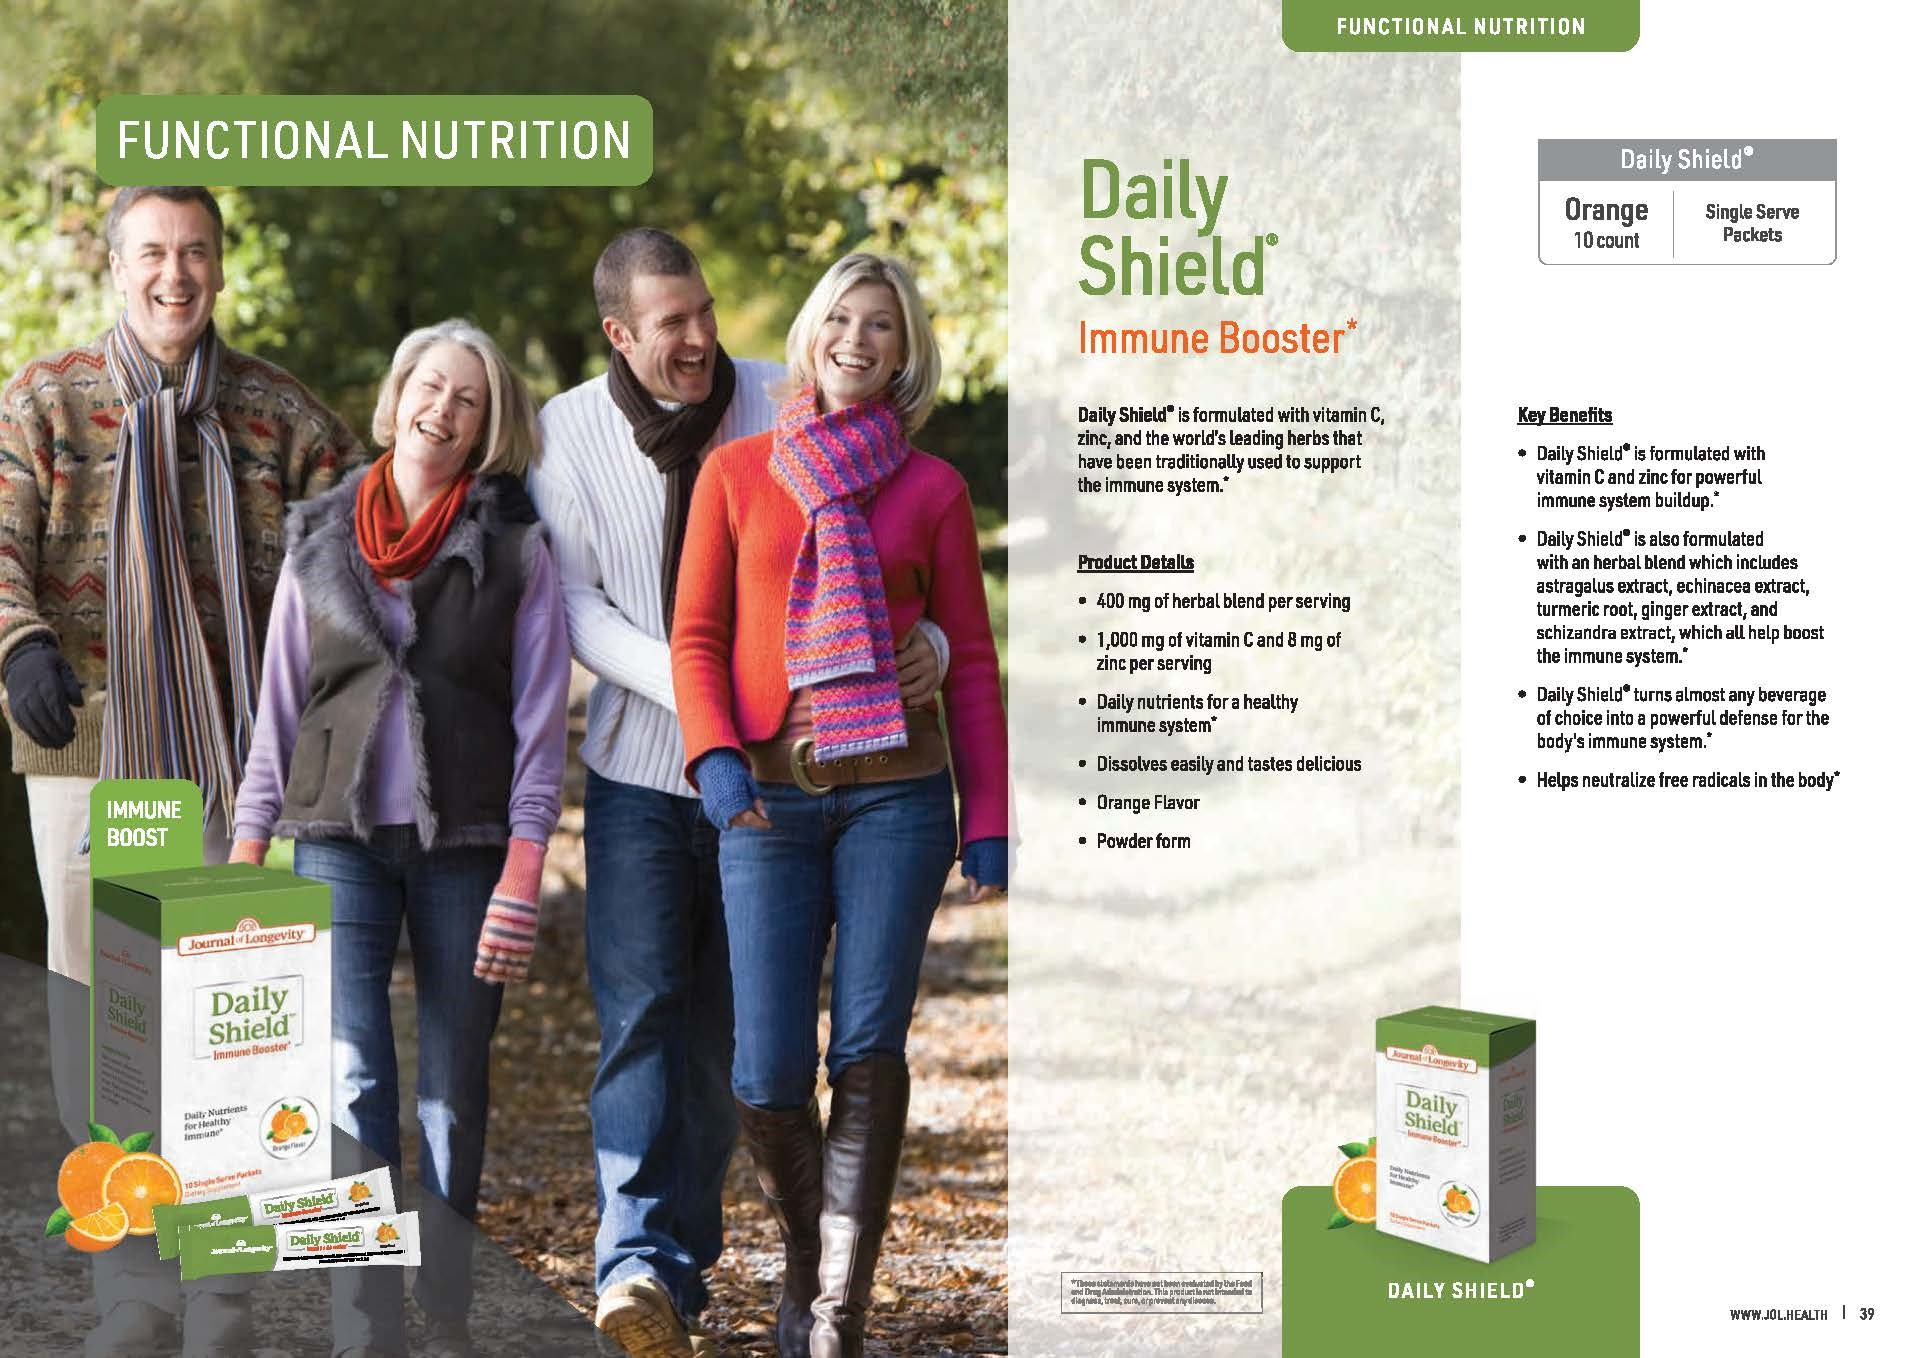 Journal of Longevity Daily Shield Immunity Booster Supplement with Vitamin C And Zinc For Immune System Support